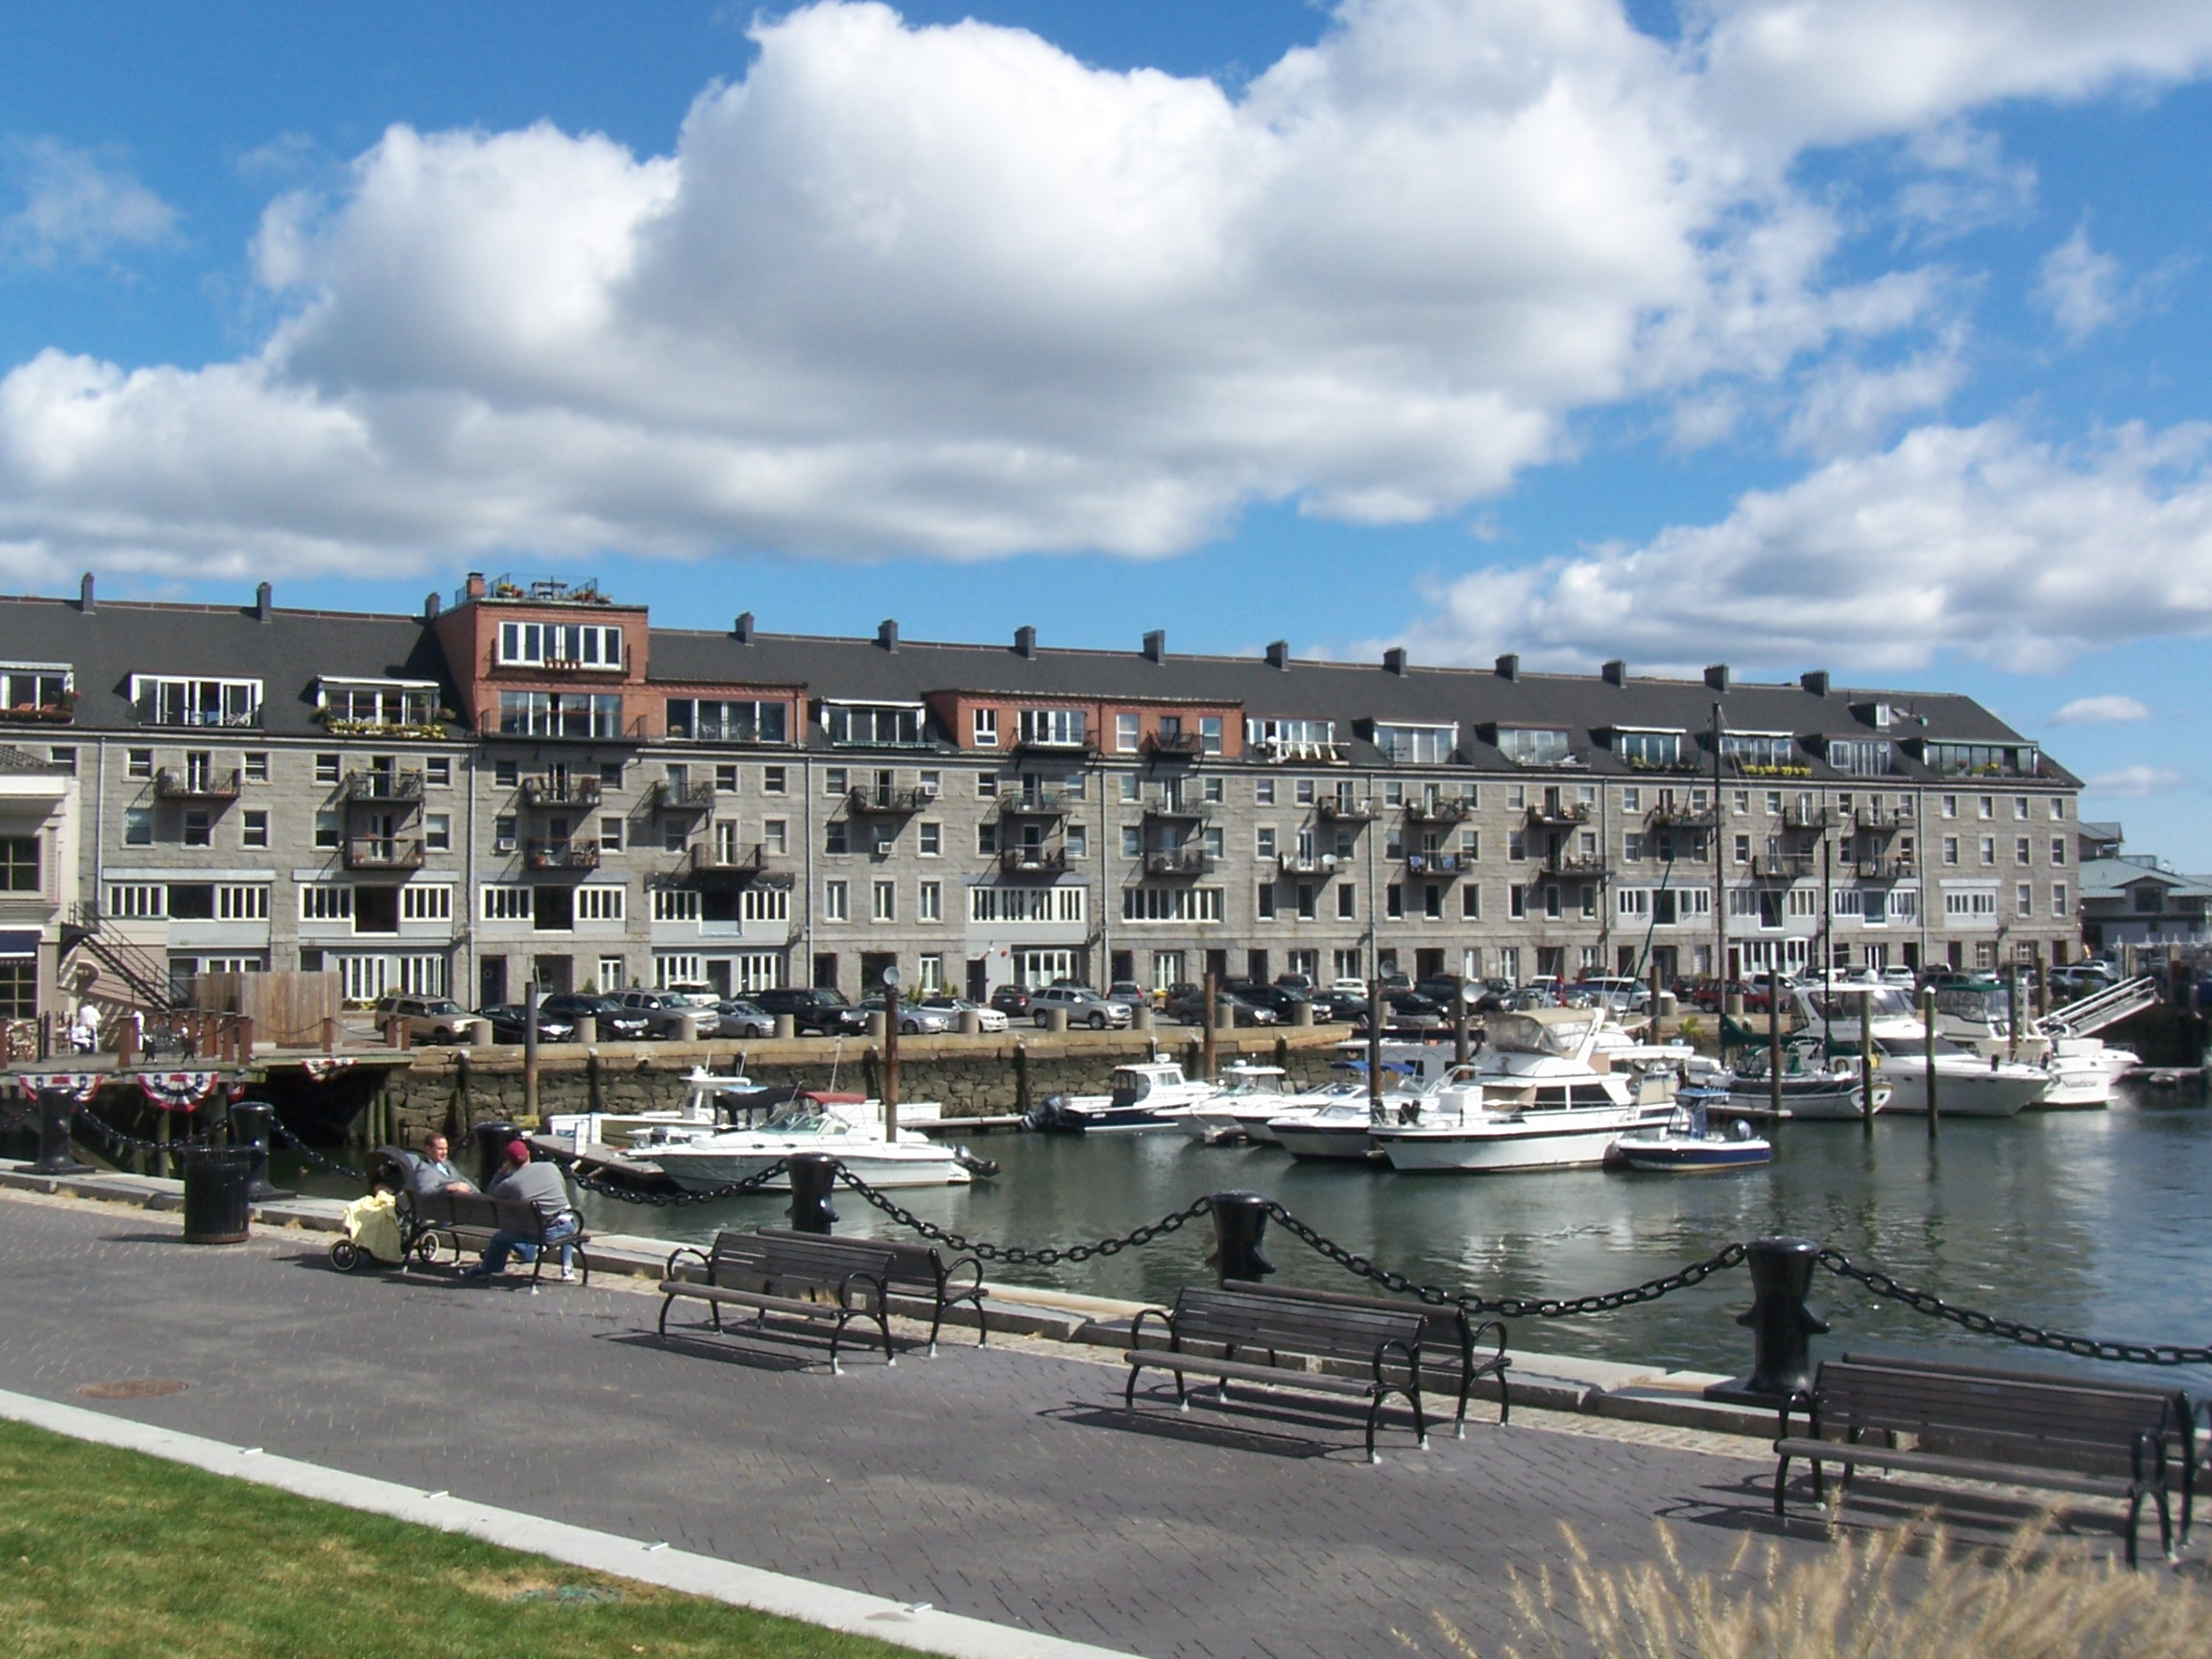 Commercial Wharf Condos in Boston